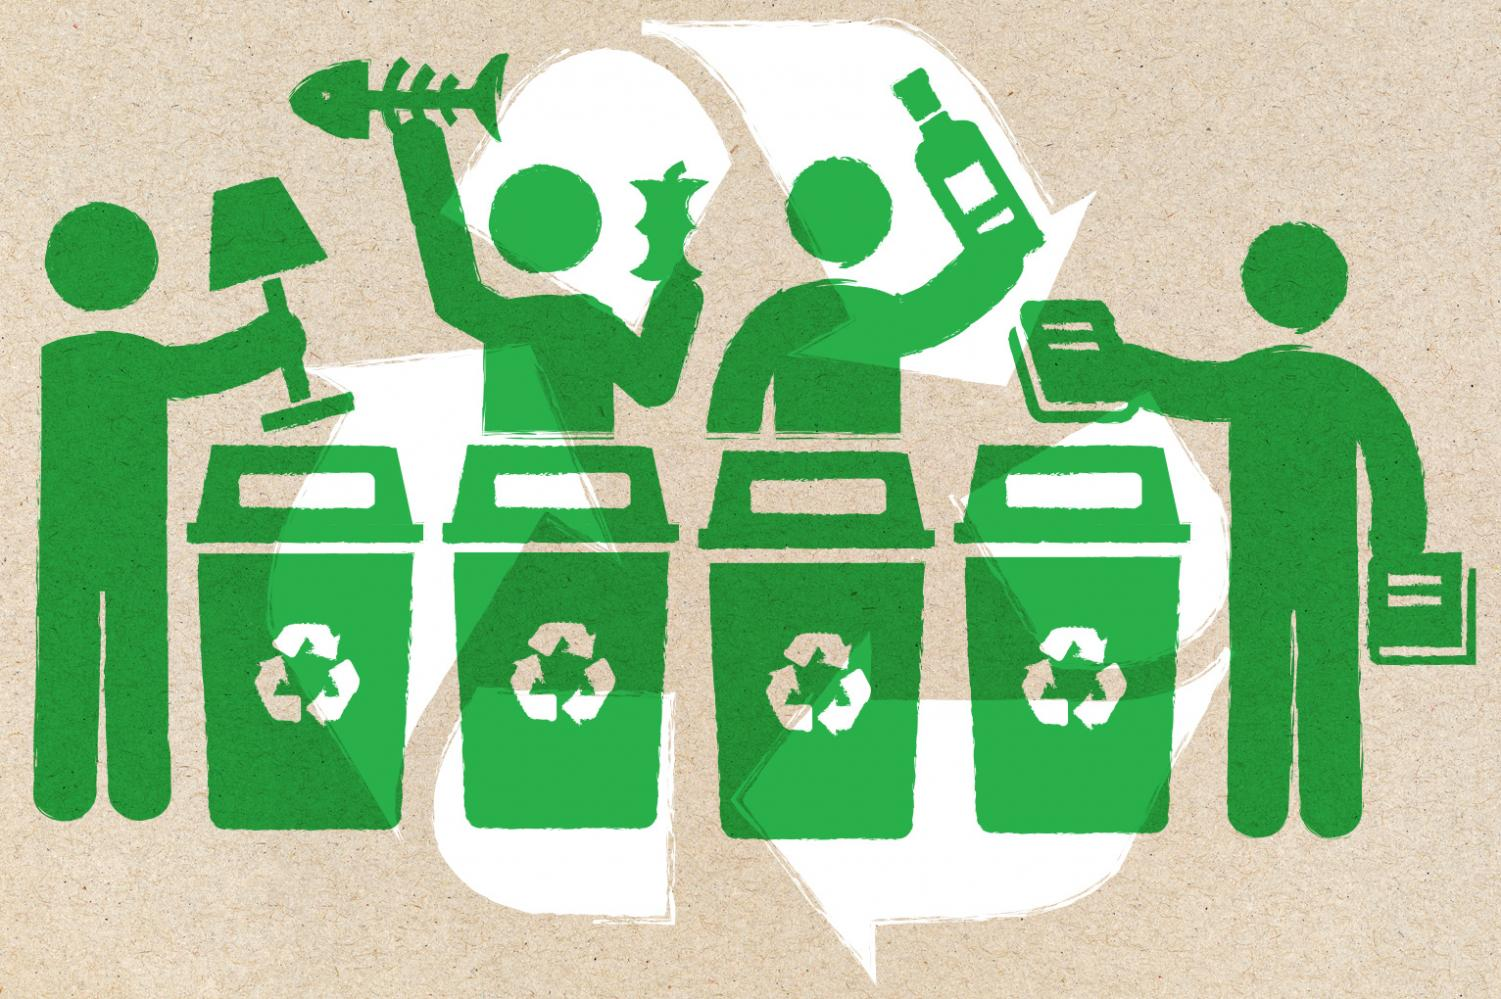 Different Ways to Recycle